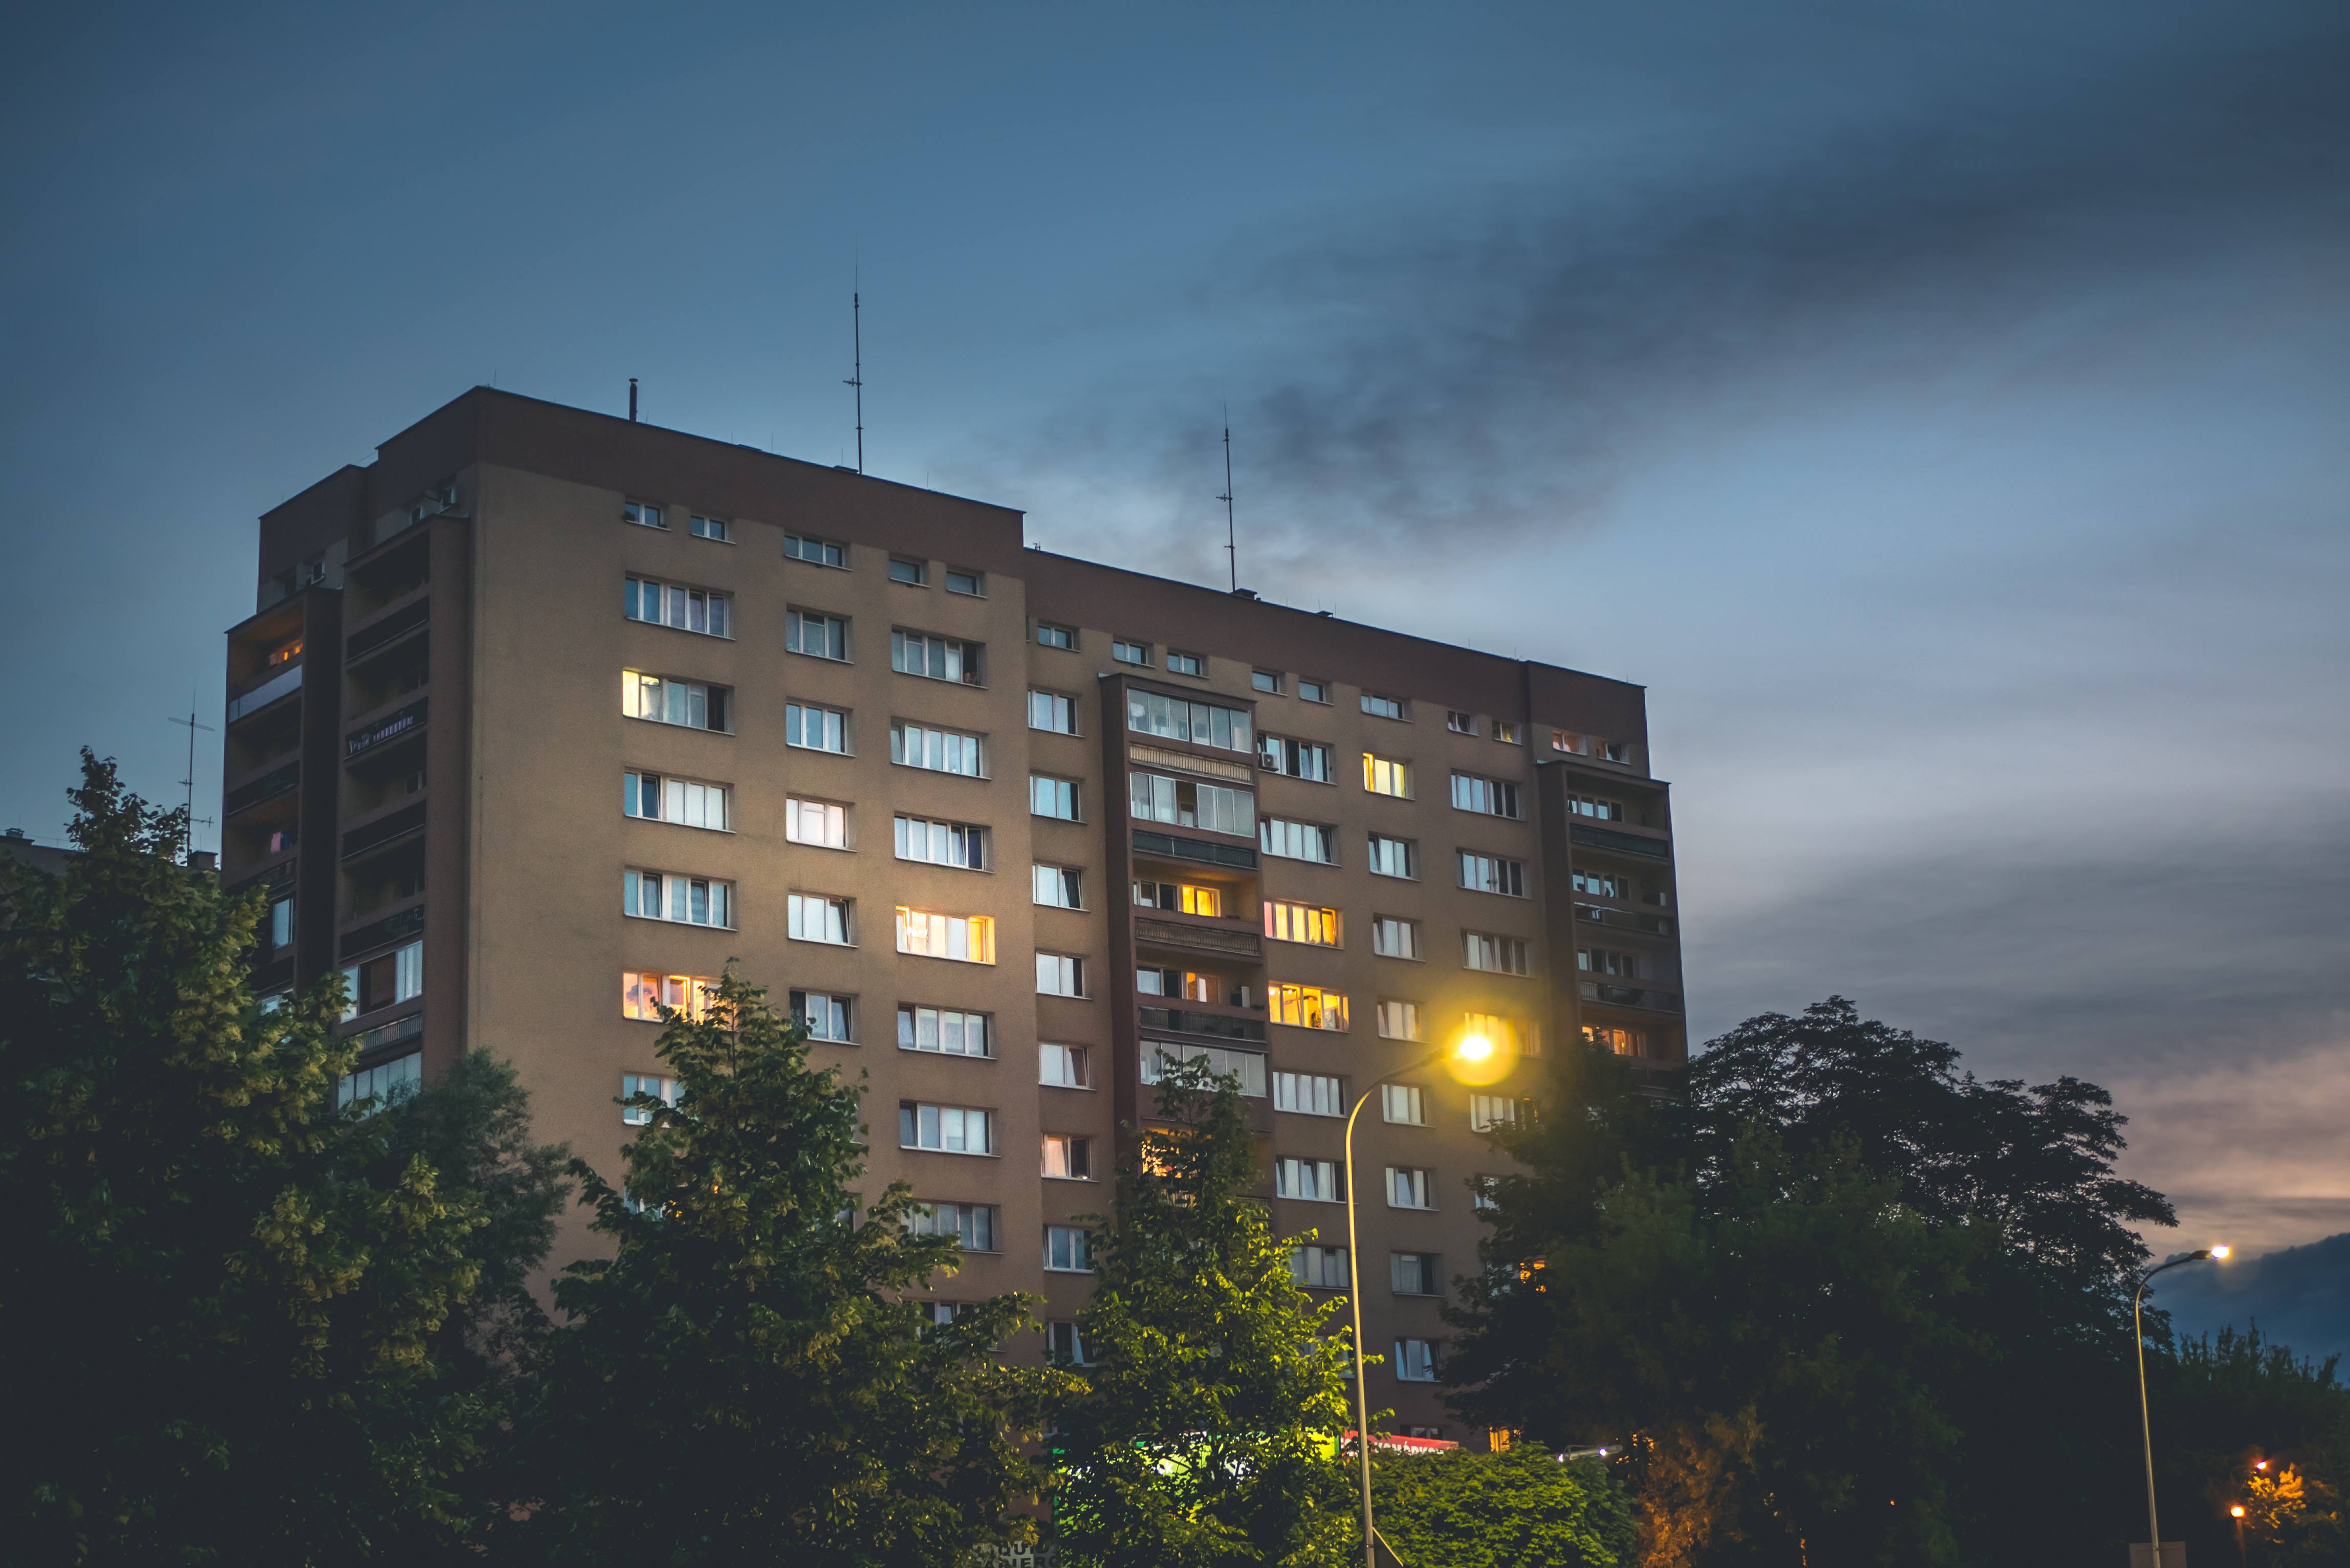 Flat estate at sunset, Apartment, District, Night, Light, HQ Photo